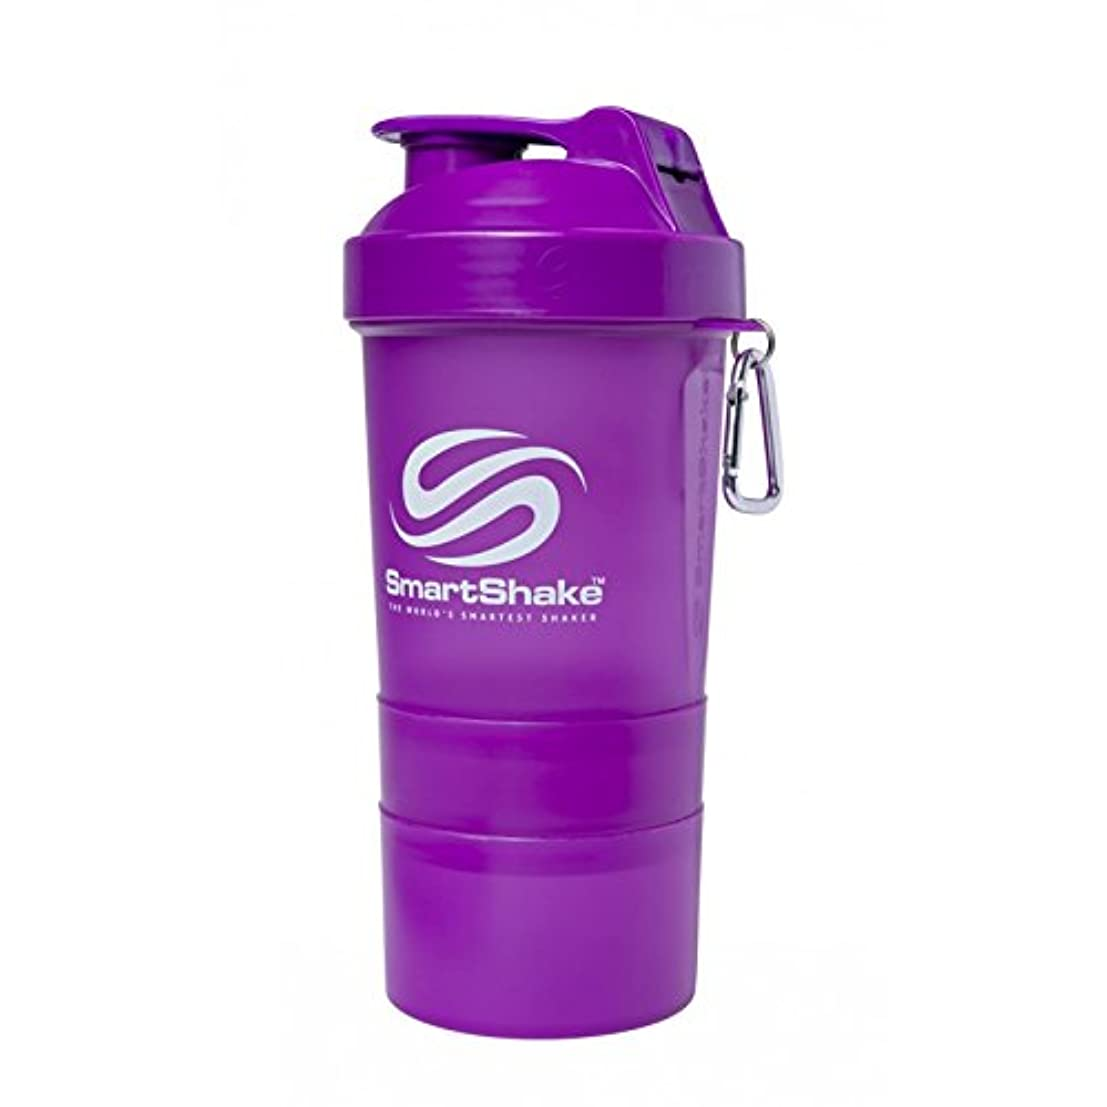 ヒットジュニア抗生物質SmartShake Original Shaker Cup, Neon Purple, 20 oz by smartshake